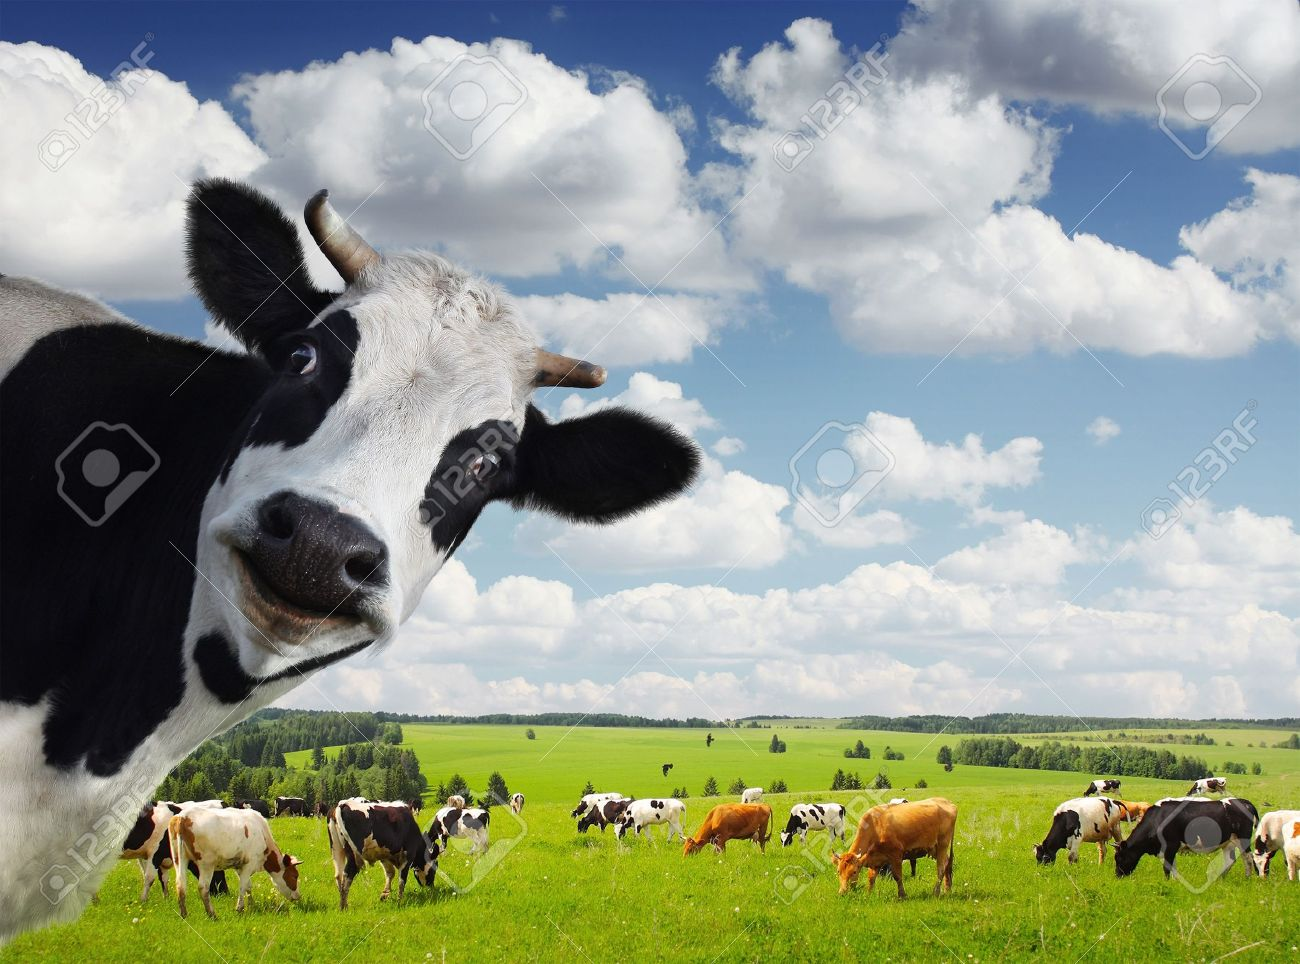 Funny cow smiling - photo#27